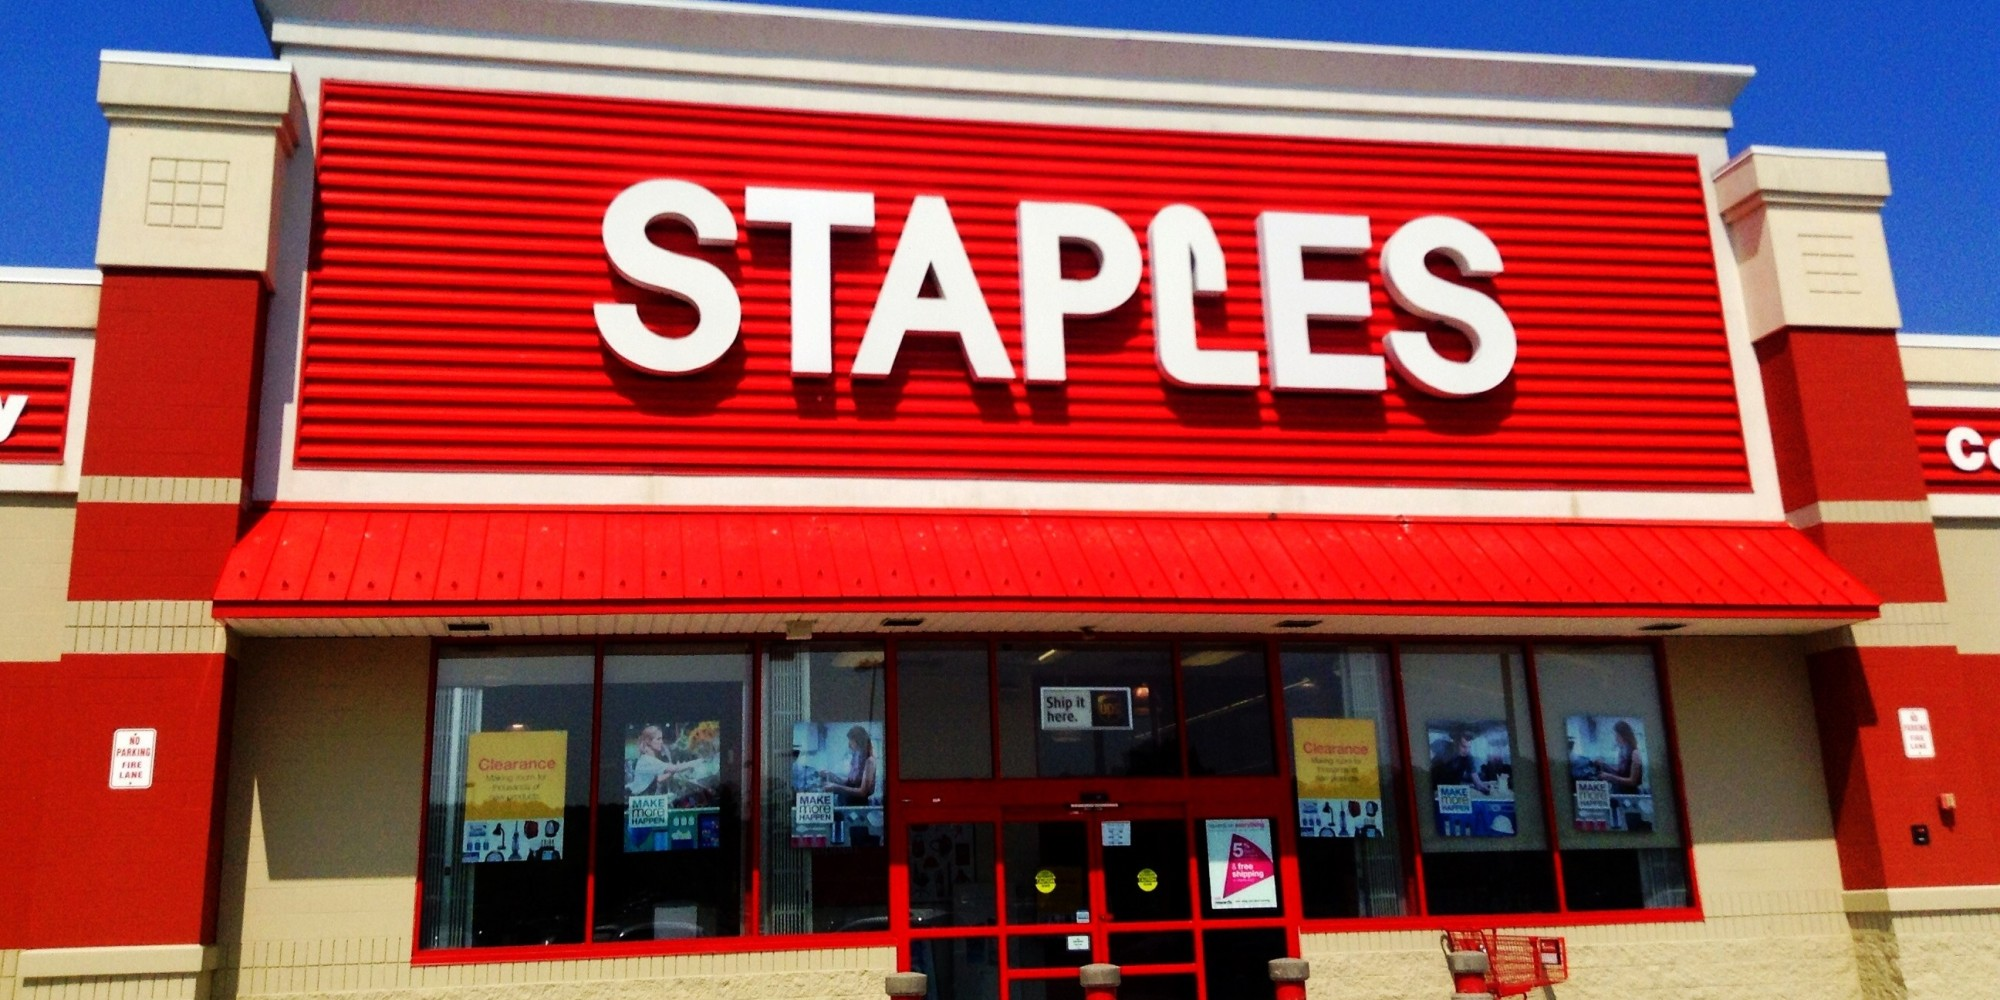 Staples Labor Day Sales & Deals 2018 - $300 on Computers/Tablets